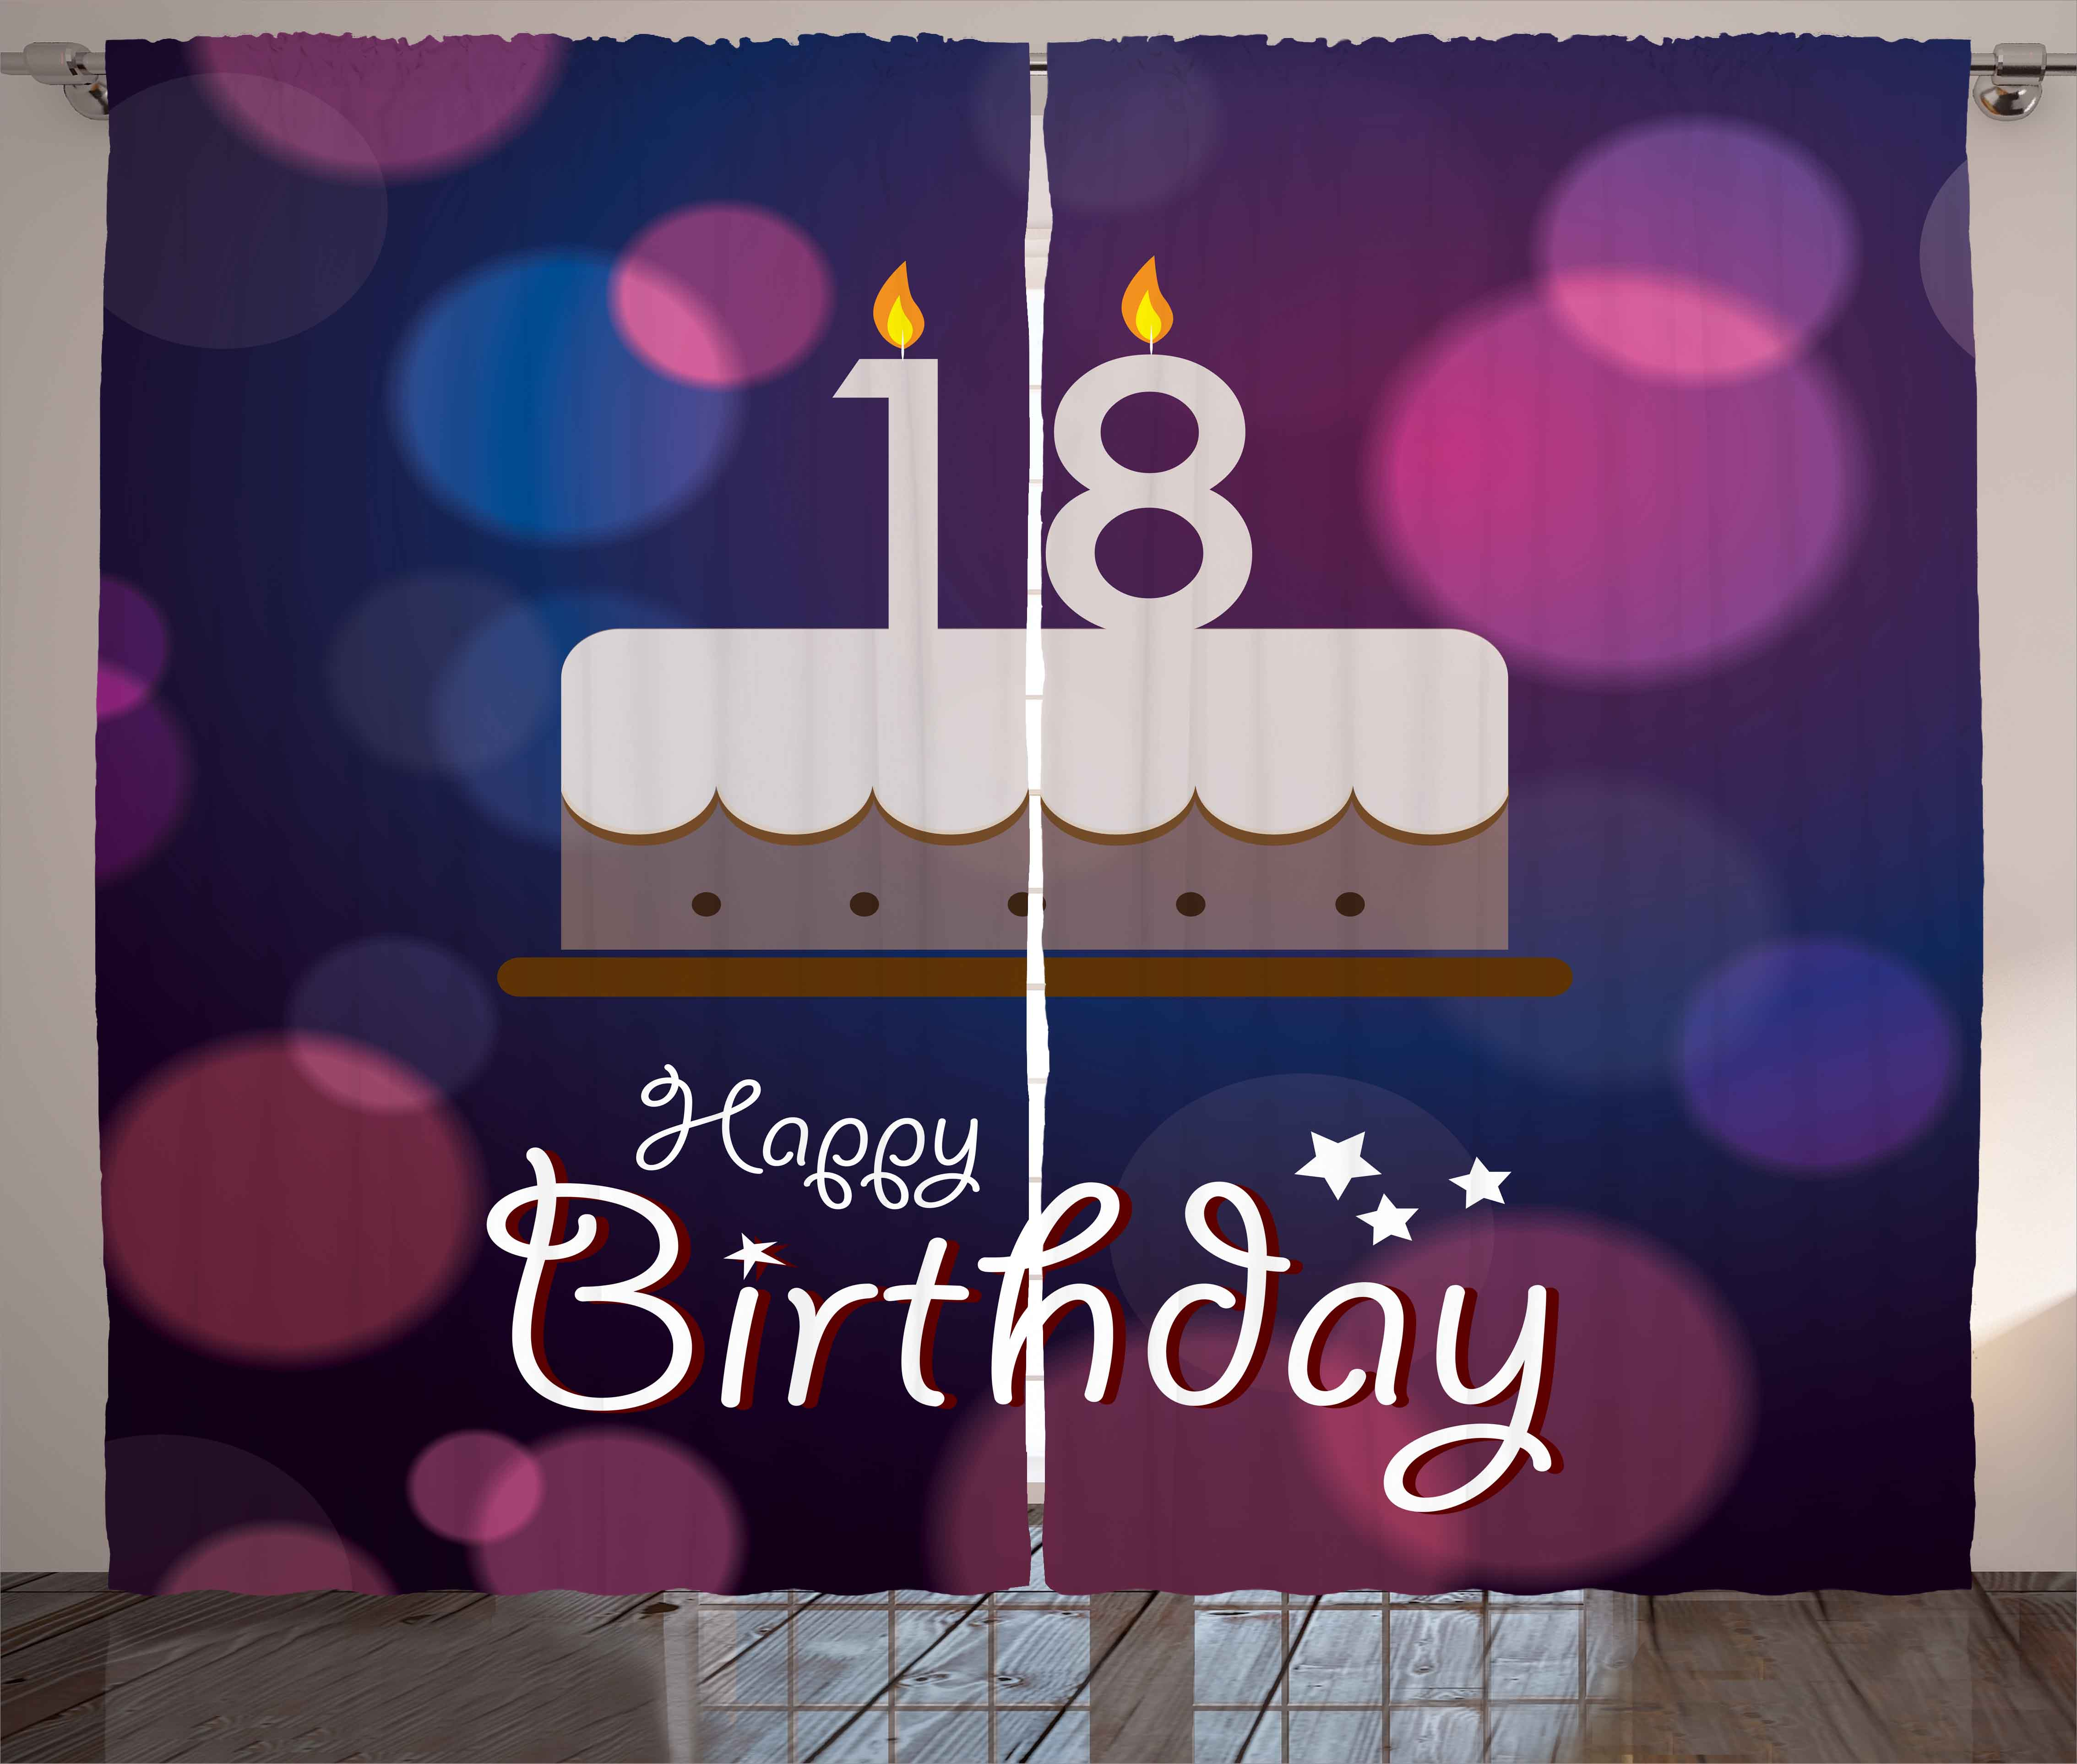 18th Birthday Decoration Curtains 2 Panels Set Cartoon Party Cake With Candles Abstract Backdrop Window Drapes For Living Room Bedroom